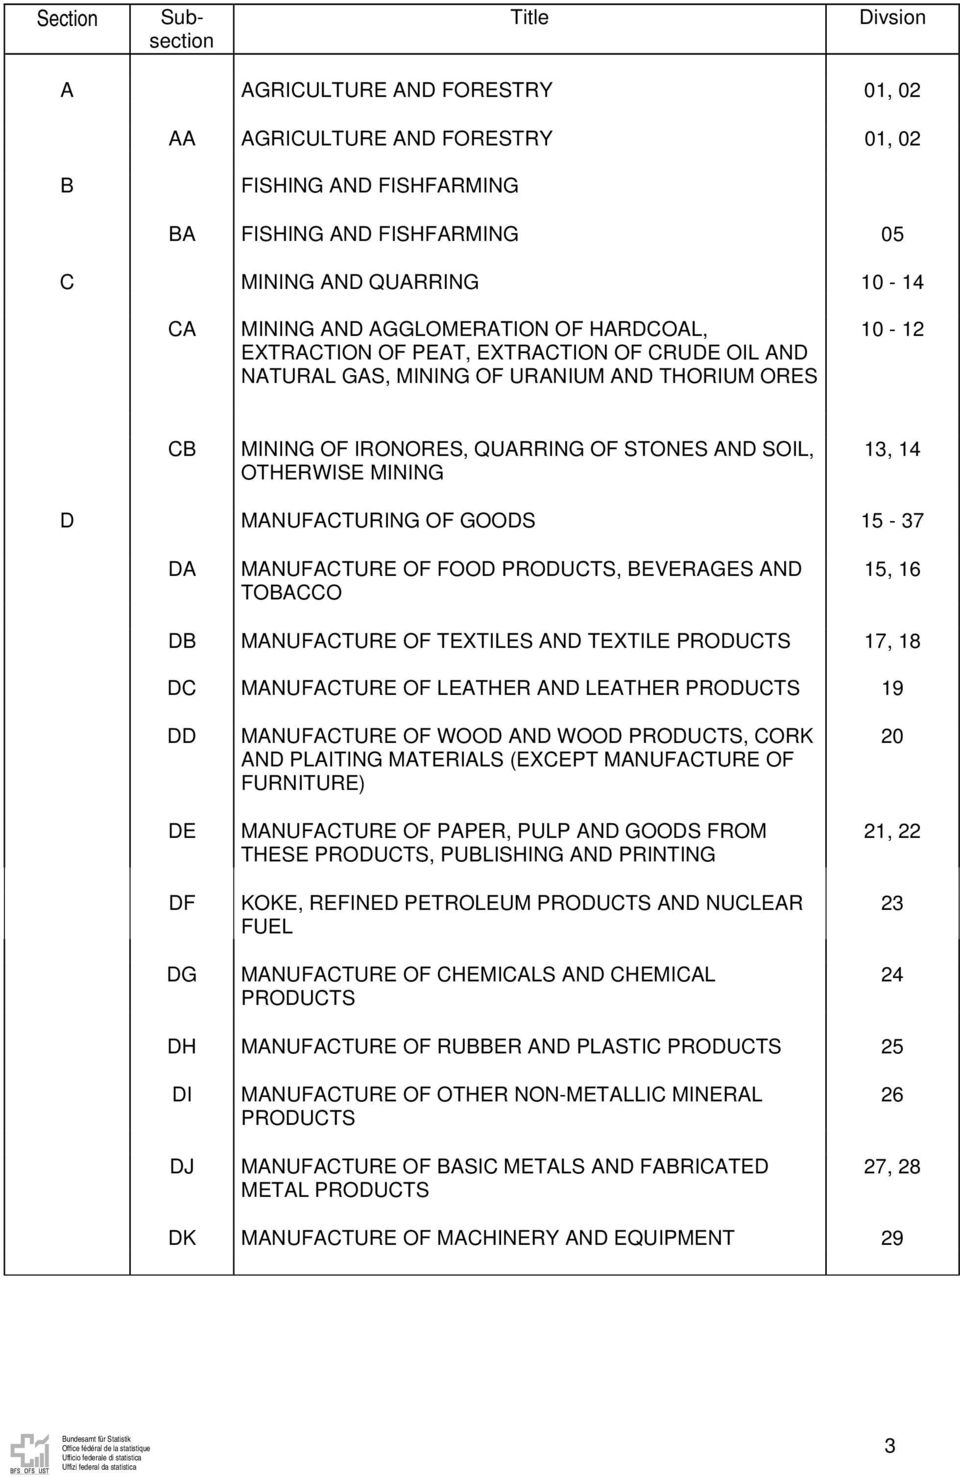 MANUFACTURING OF GOODS 15-37 DA MANUFACTURE OF FOOD PRODUCTS, BEVERAGES AND TOBACCO 15, 16 DB MANUFACTURE OF TEXTILES AND TEXTILE PRODUCTS 17, 18 DC MANUFACTURE OF LEATHER AND LEATHER PRODUCTS 19 DD